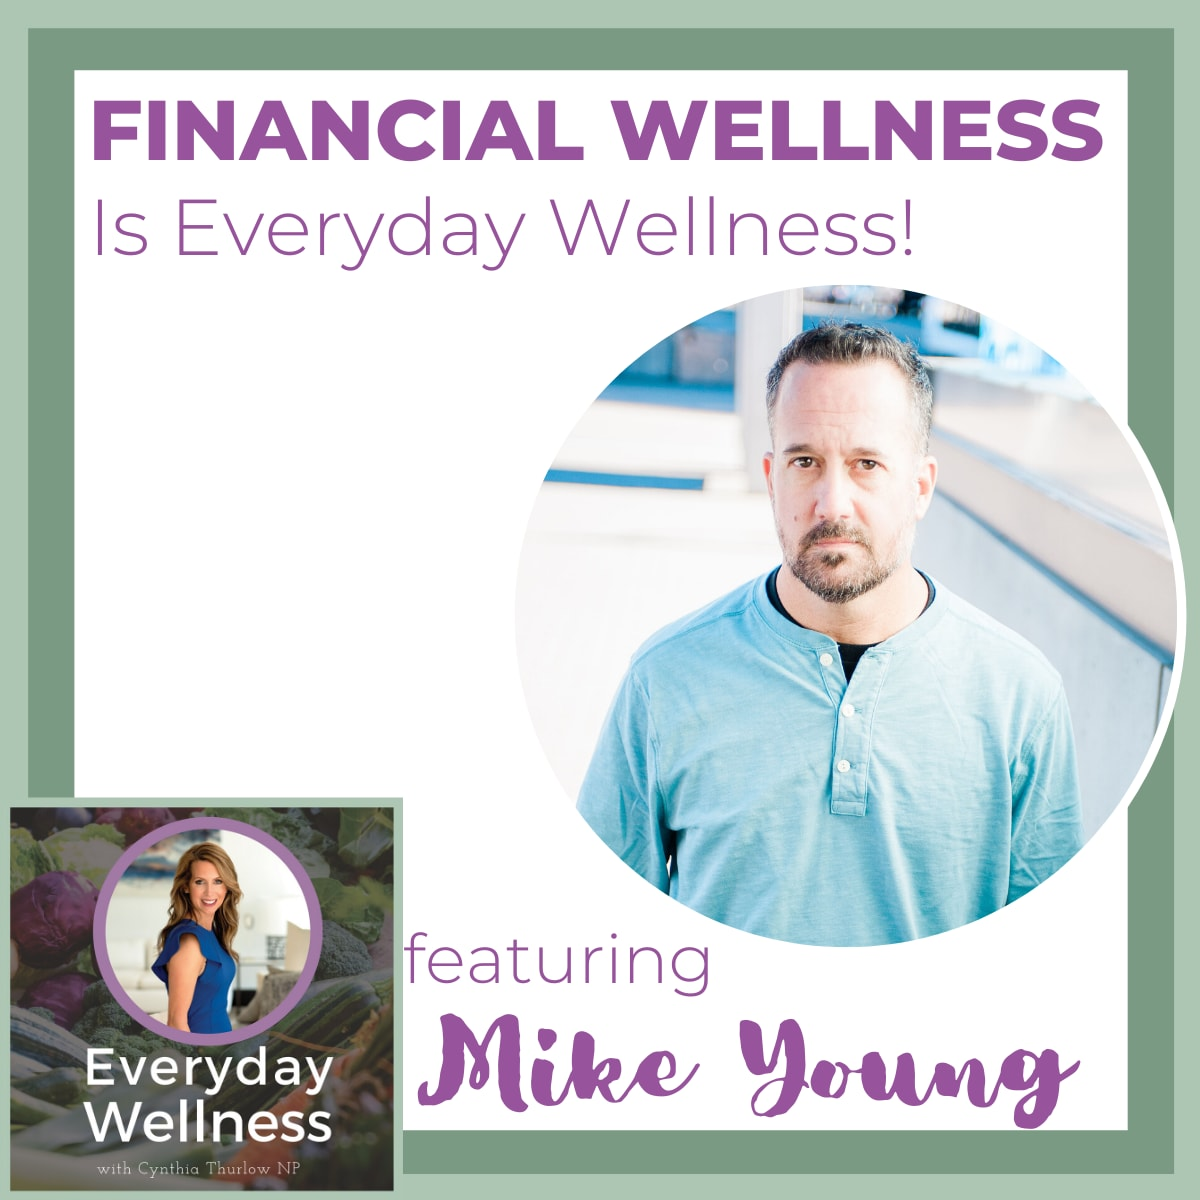 Mike young thumbnail